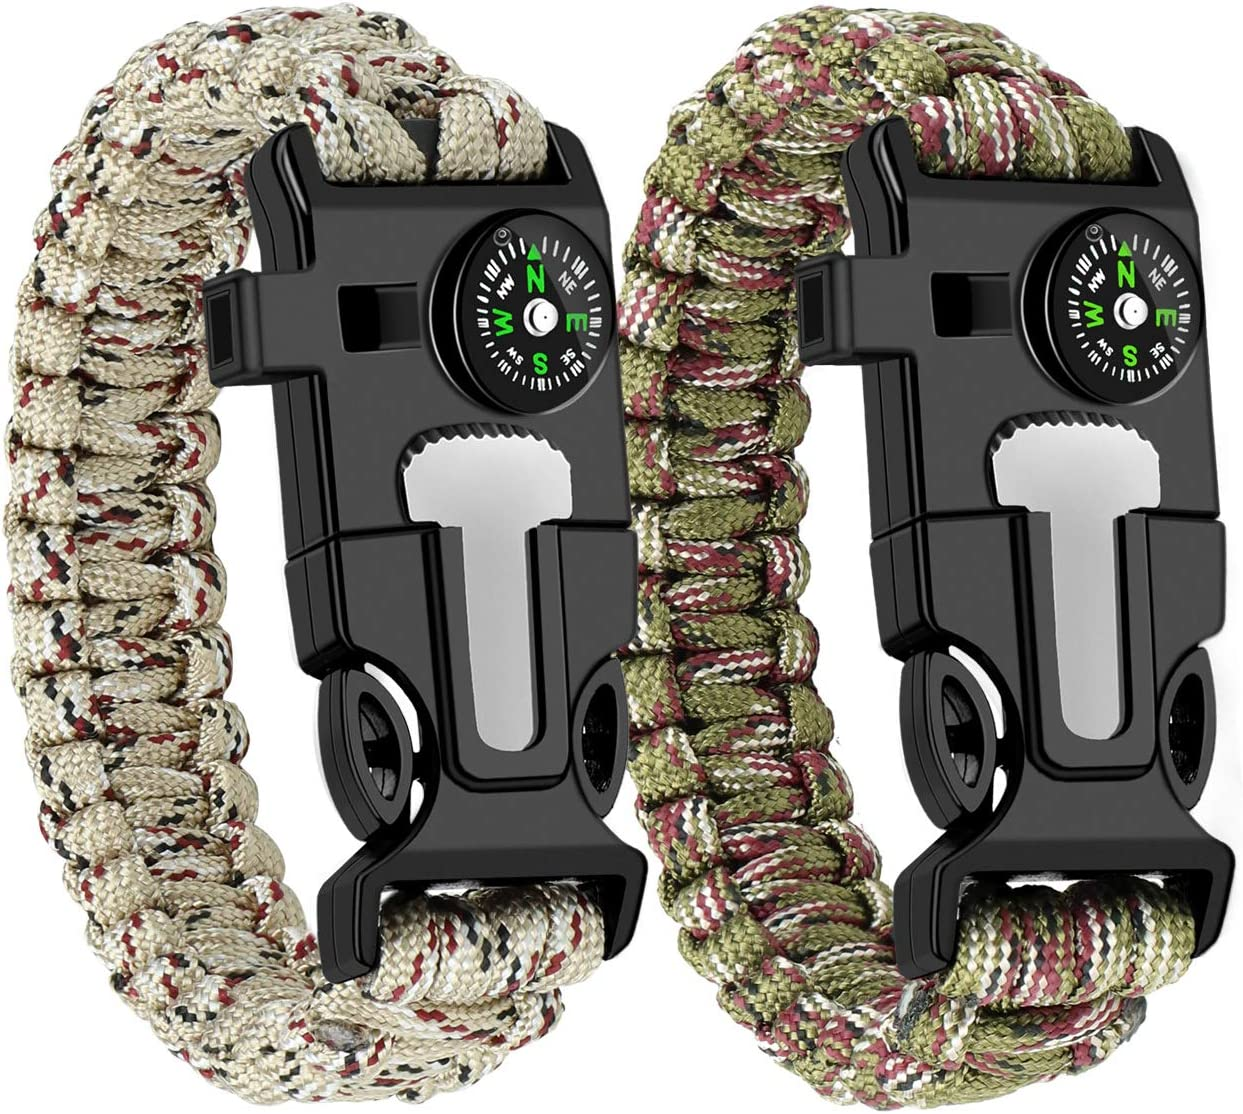 WUQID Paracord Survival Bracelet Loud Whistle Emergency Compass Survival Fire Starter Knife Accessories for Hiking, Camping, Fishing and Hunting (2 Pack)